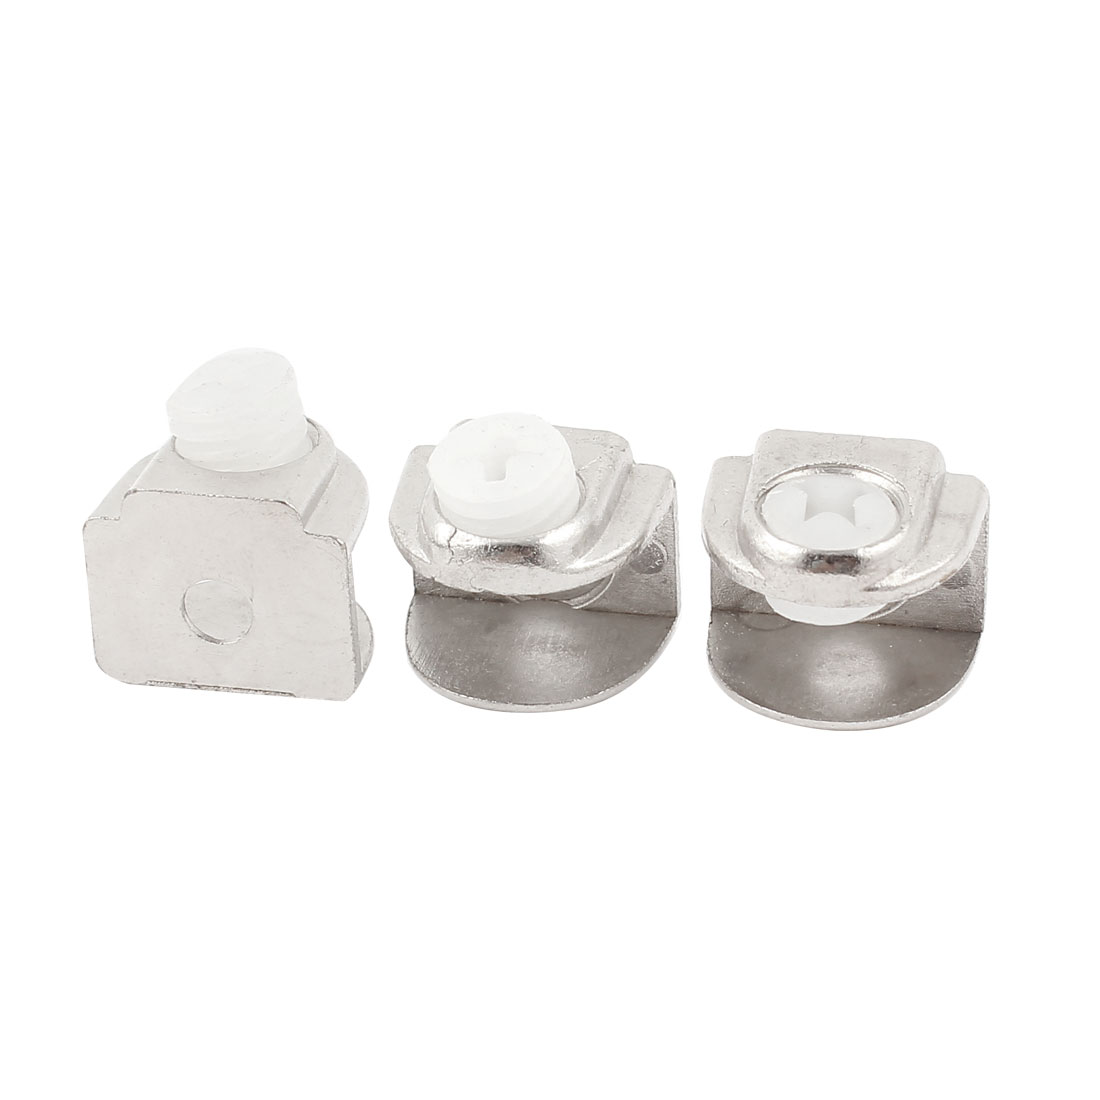 3PCS 6mm-10mm Adjustable Half Round Stainless Steel Glass Door Fixed Clamp Clip Holder Shelf